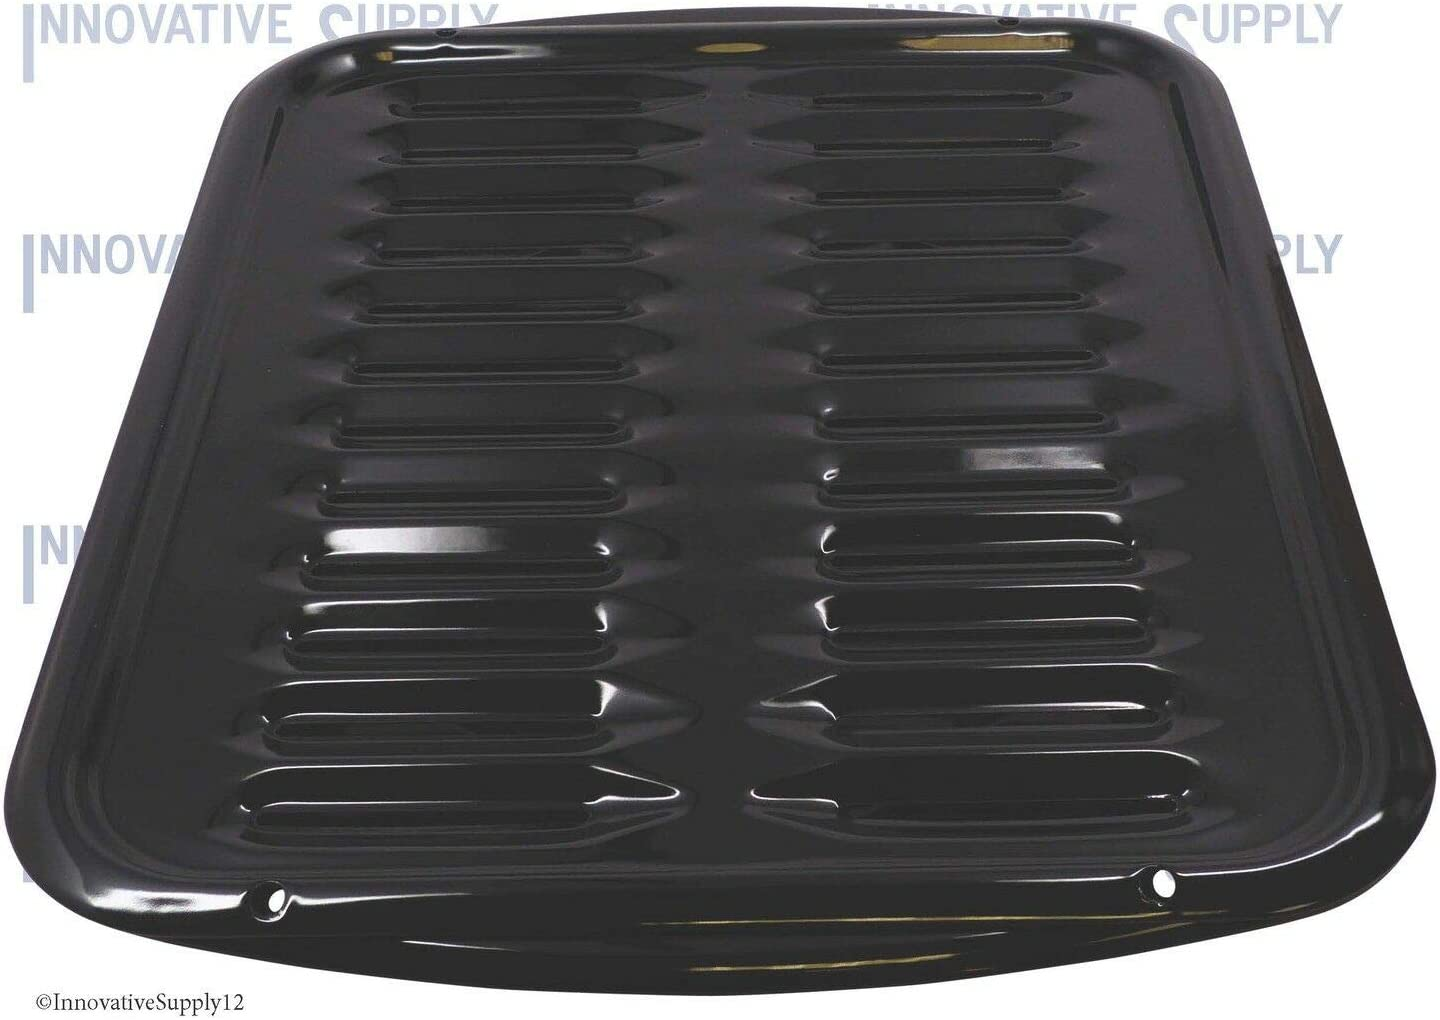 Replacement for Whirlpool 4396923RW Porcelain Broiler Pan and Grill in Black